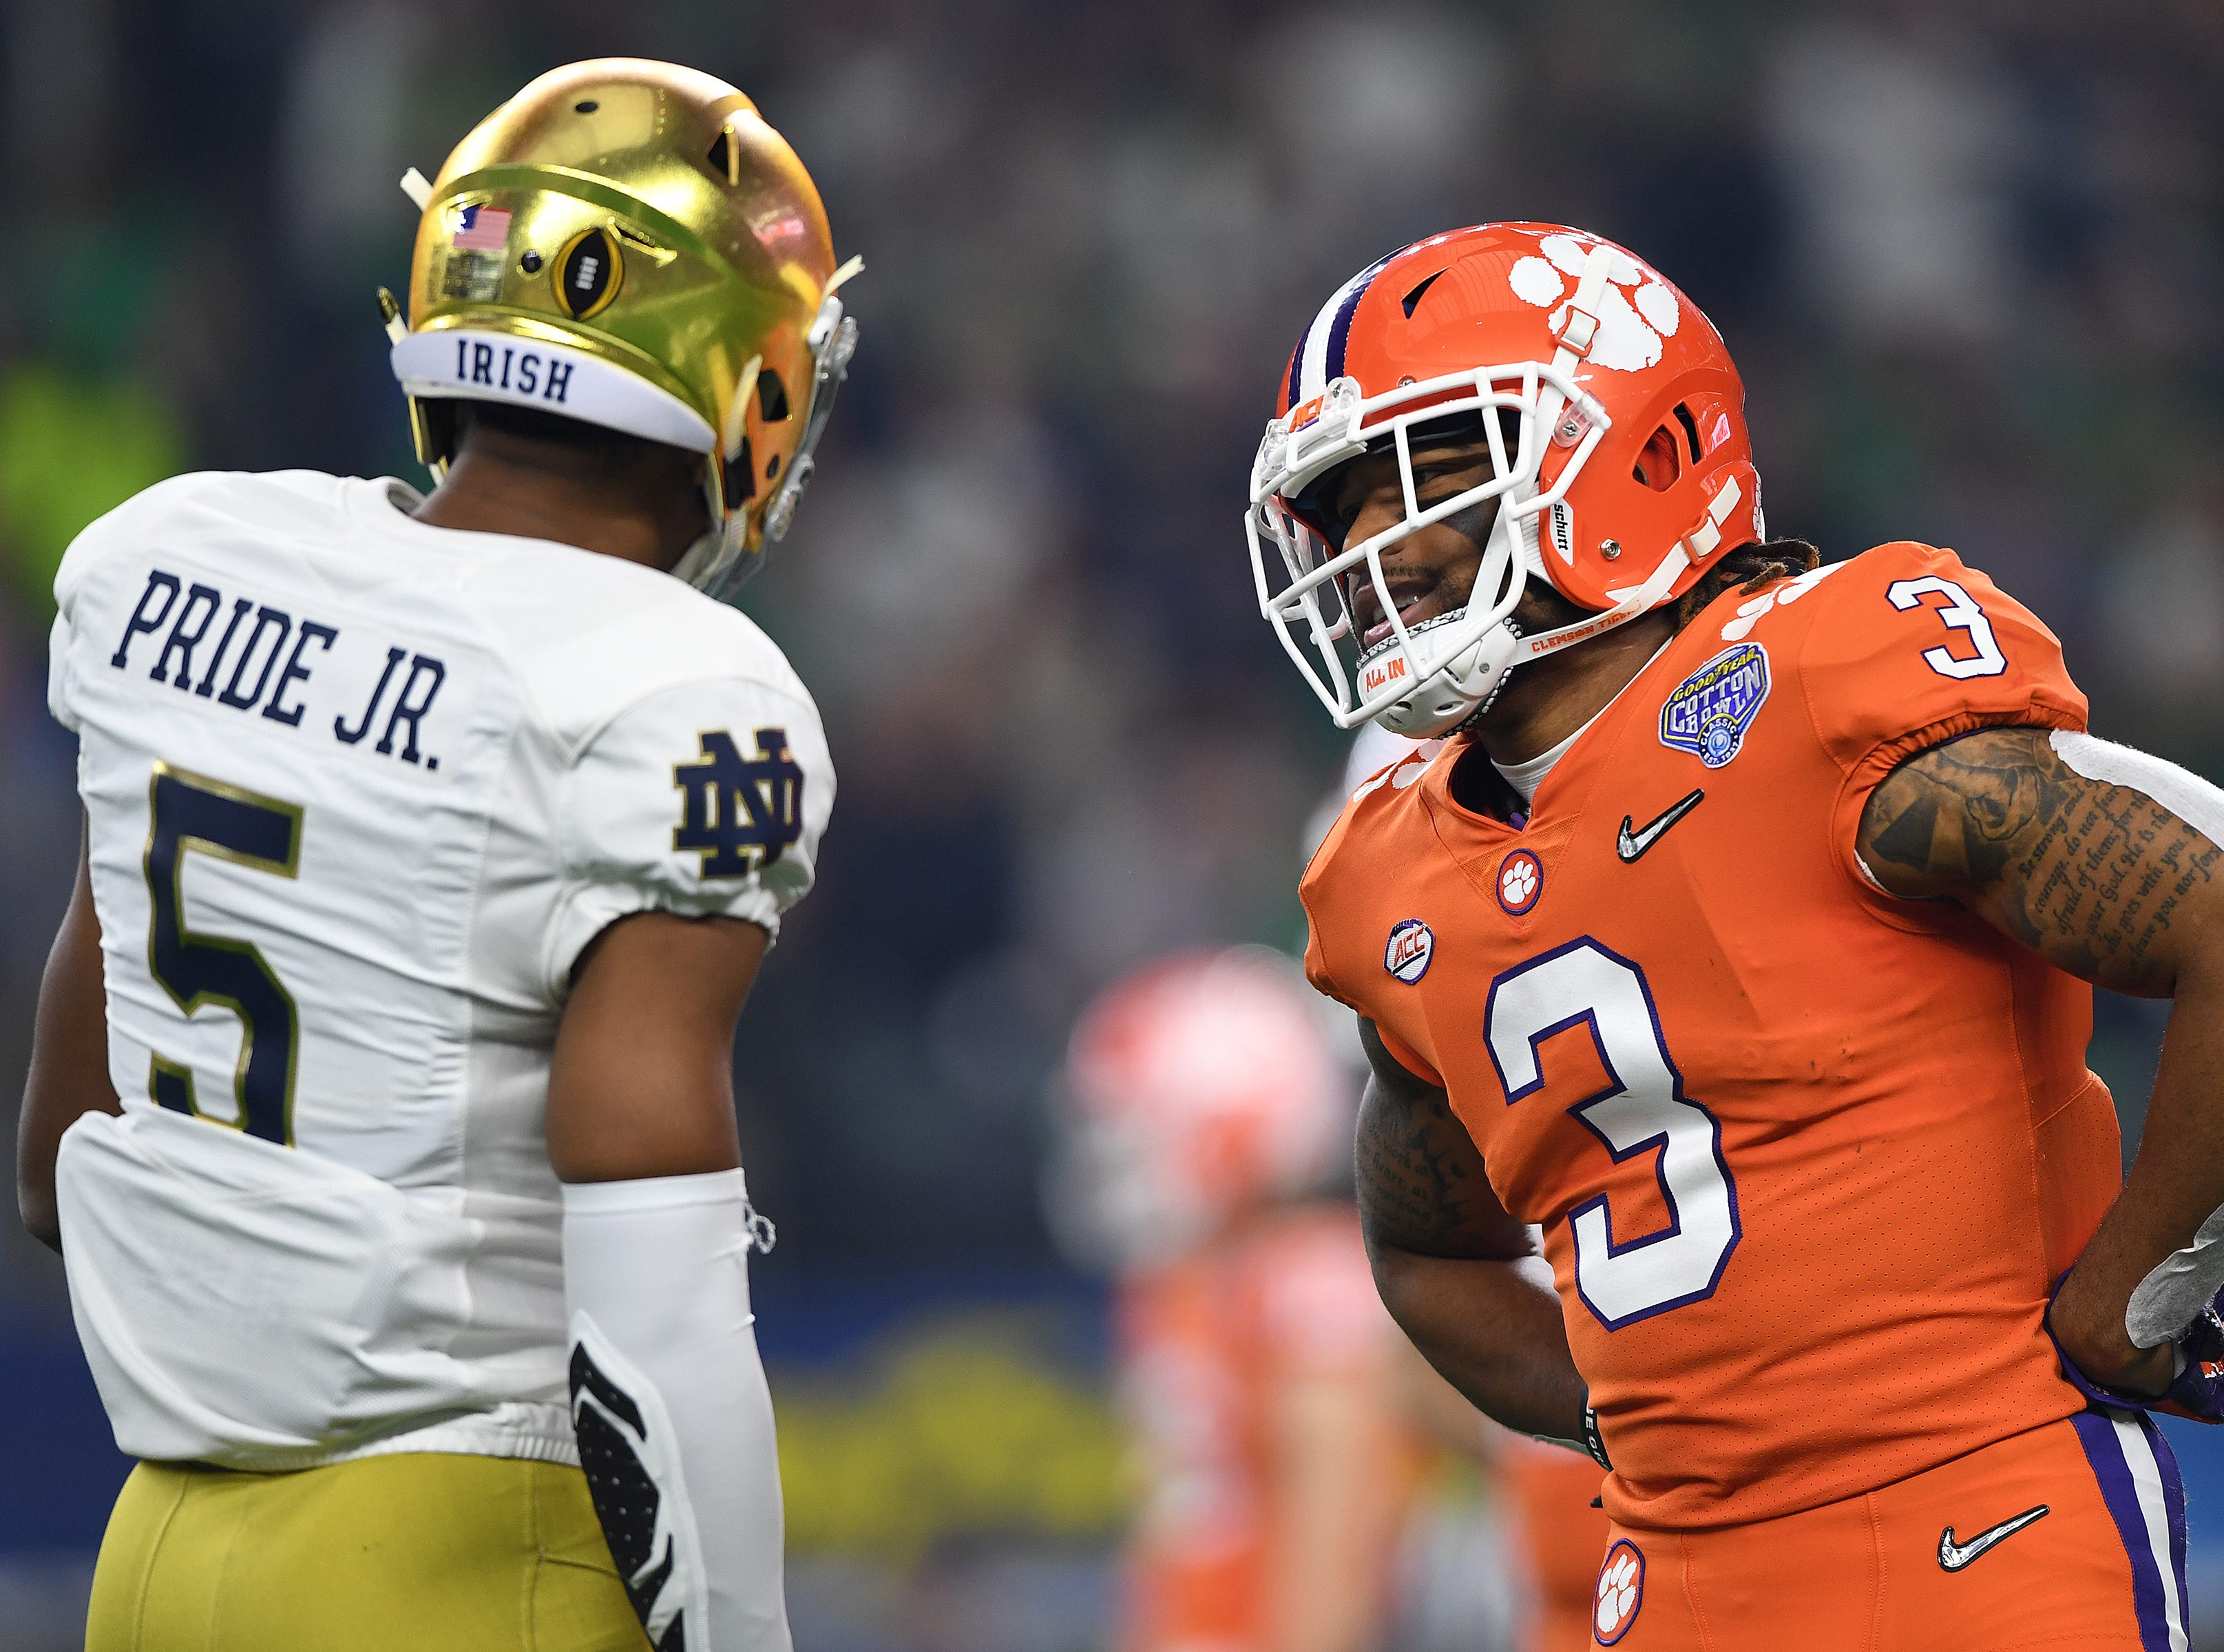 Clemson wide receiver Amari Rodgers (3) talks with \n5 between plays during the 1st quarter of the Goodyear Cotton Bowl at AT&T stadium in Arlington, TX Saturday, December 29, 2018.